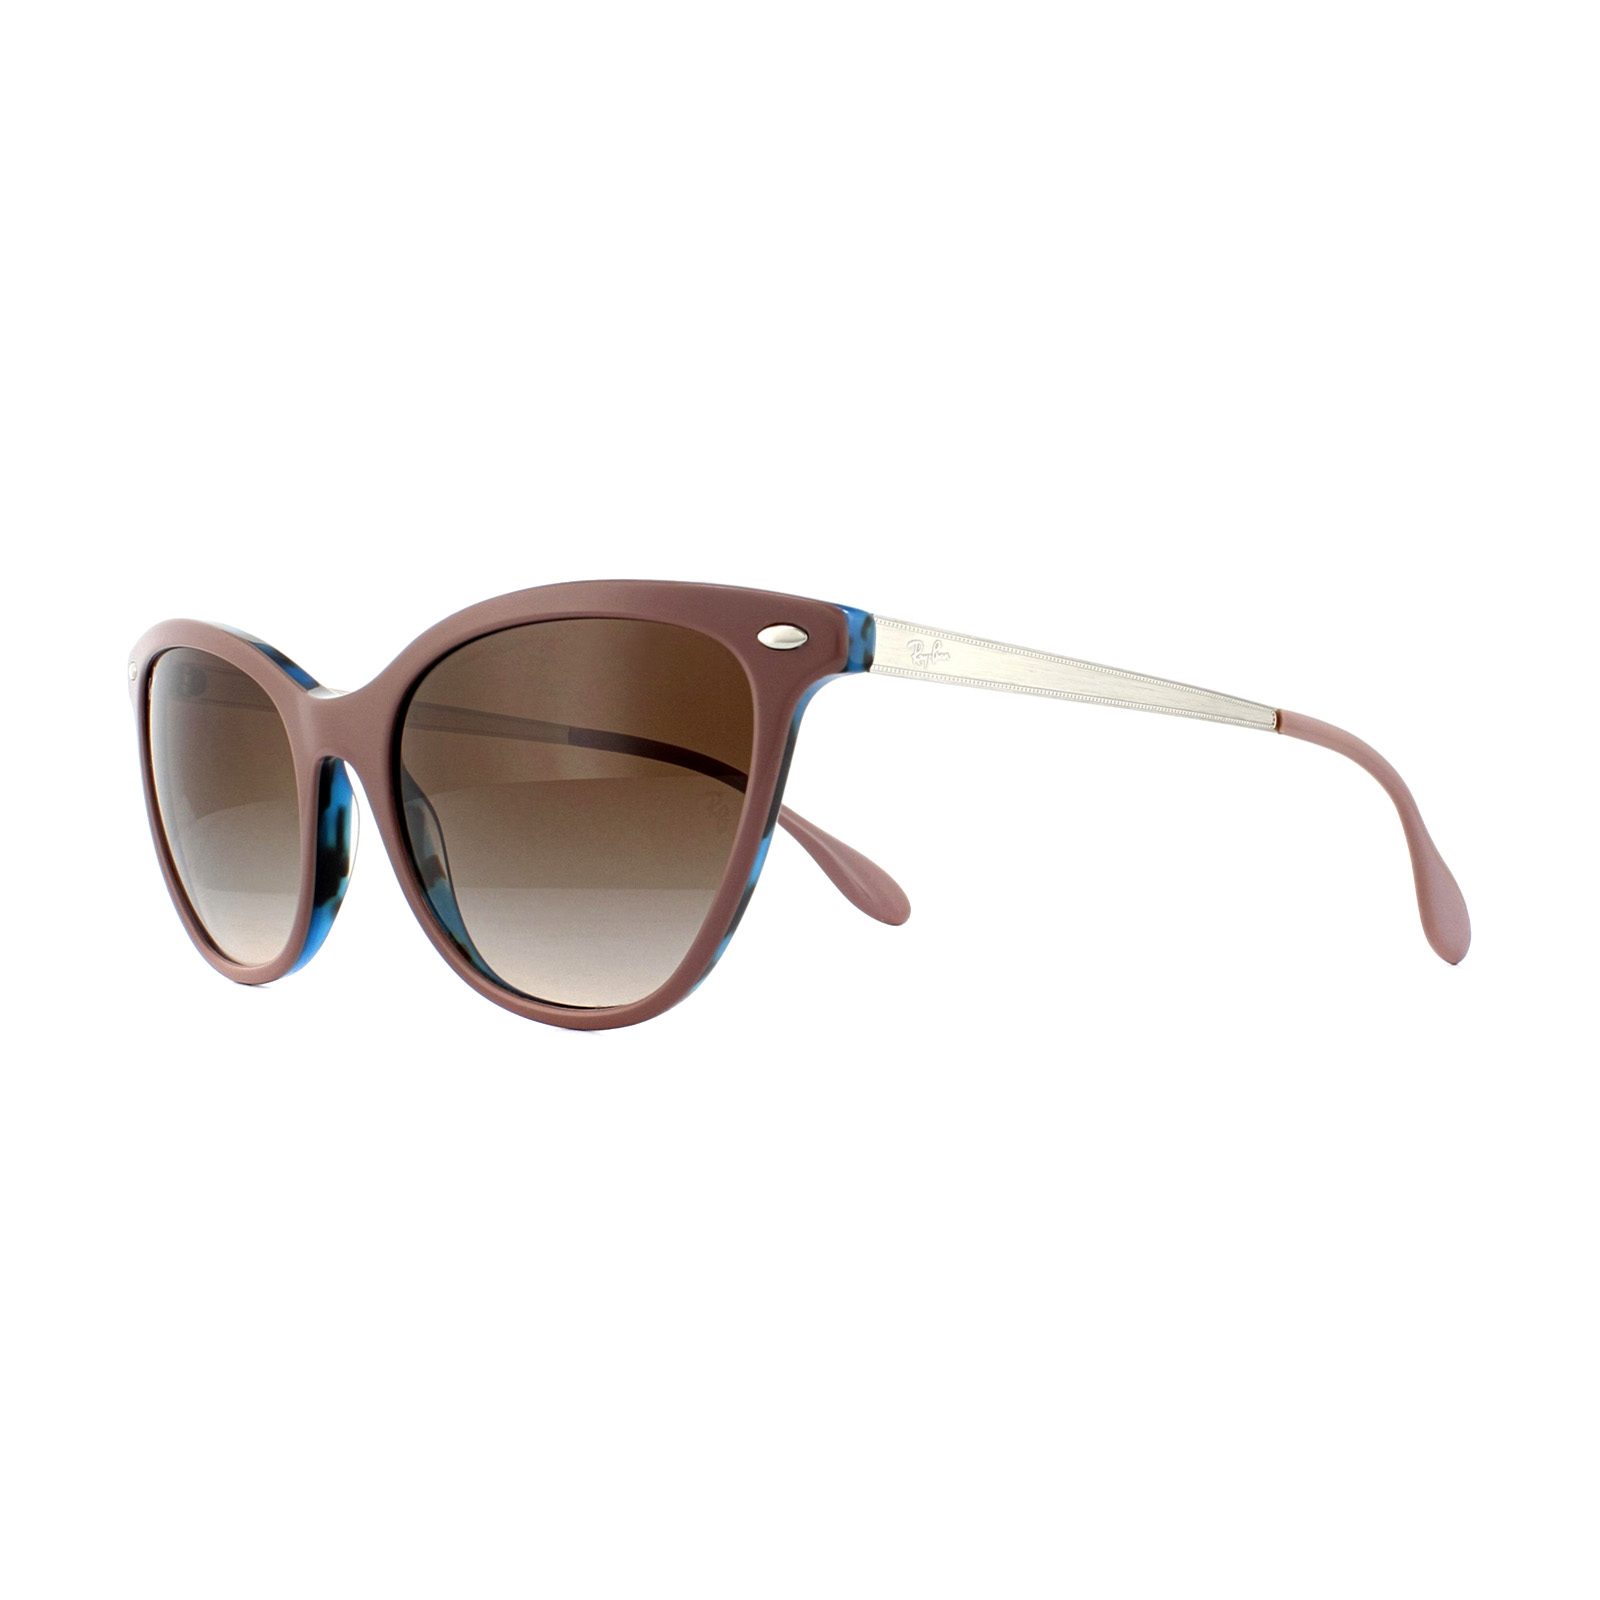 91f2023037796 Sentinel Ray-Ban Sunglasses RB4360 123513 Light Brown Havana Blue Brown  Gradient